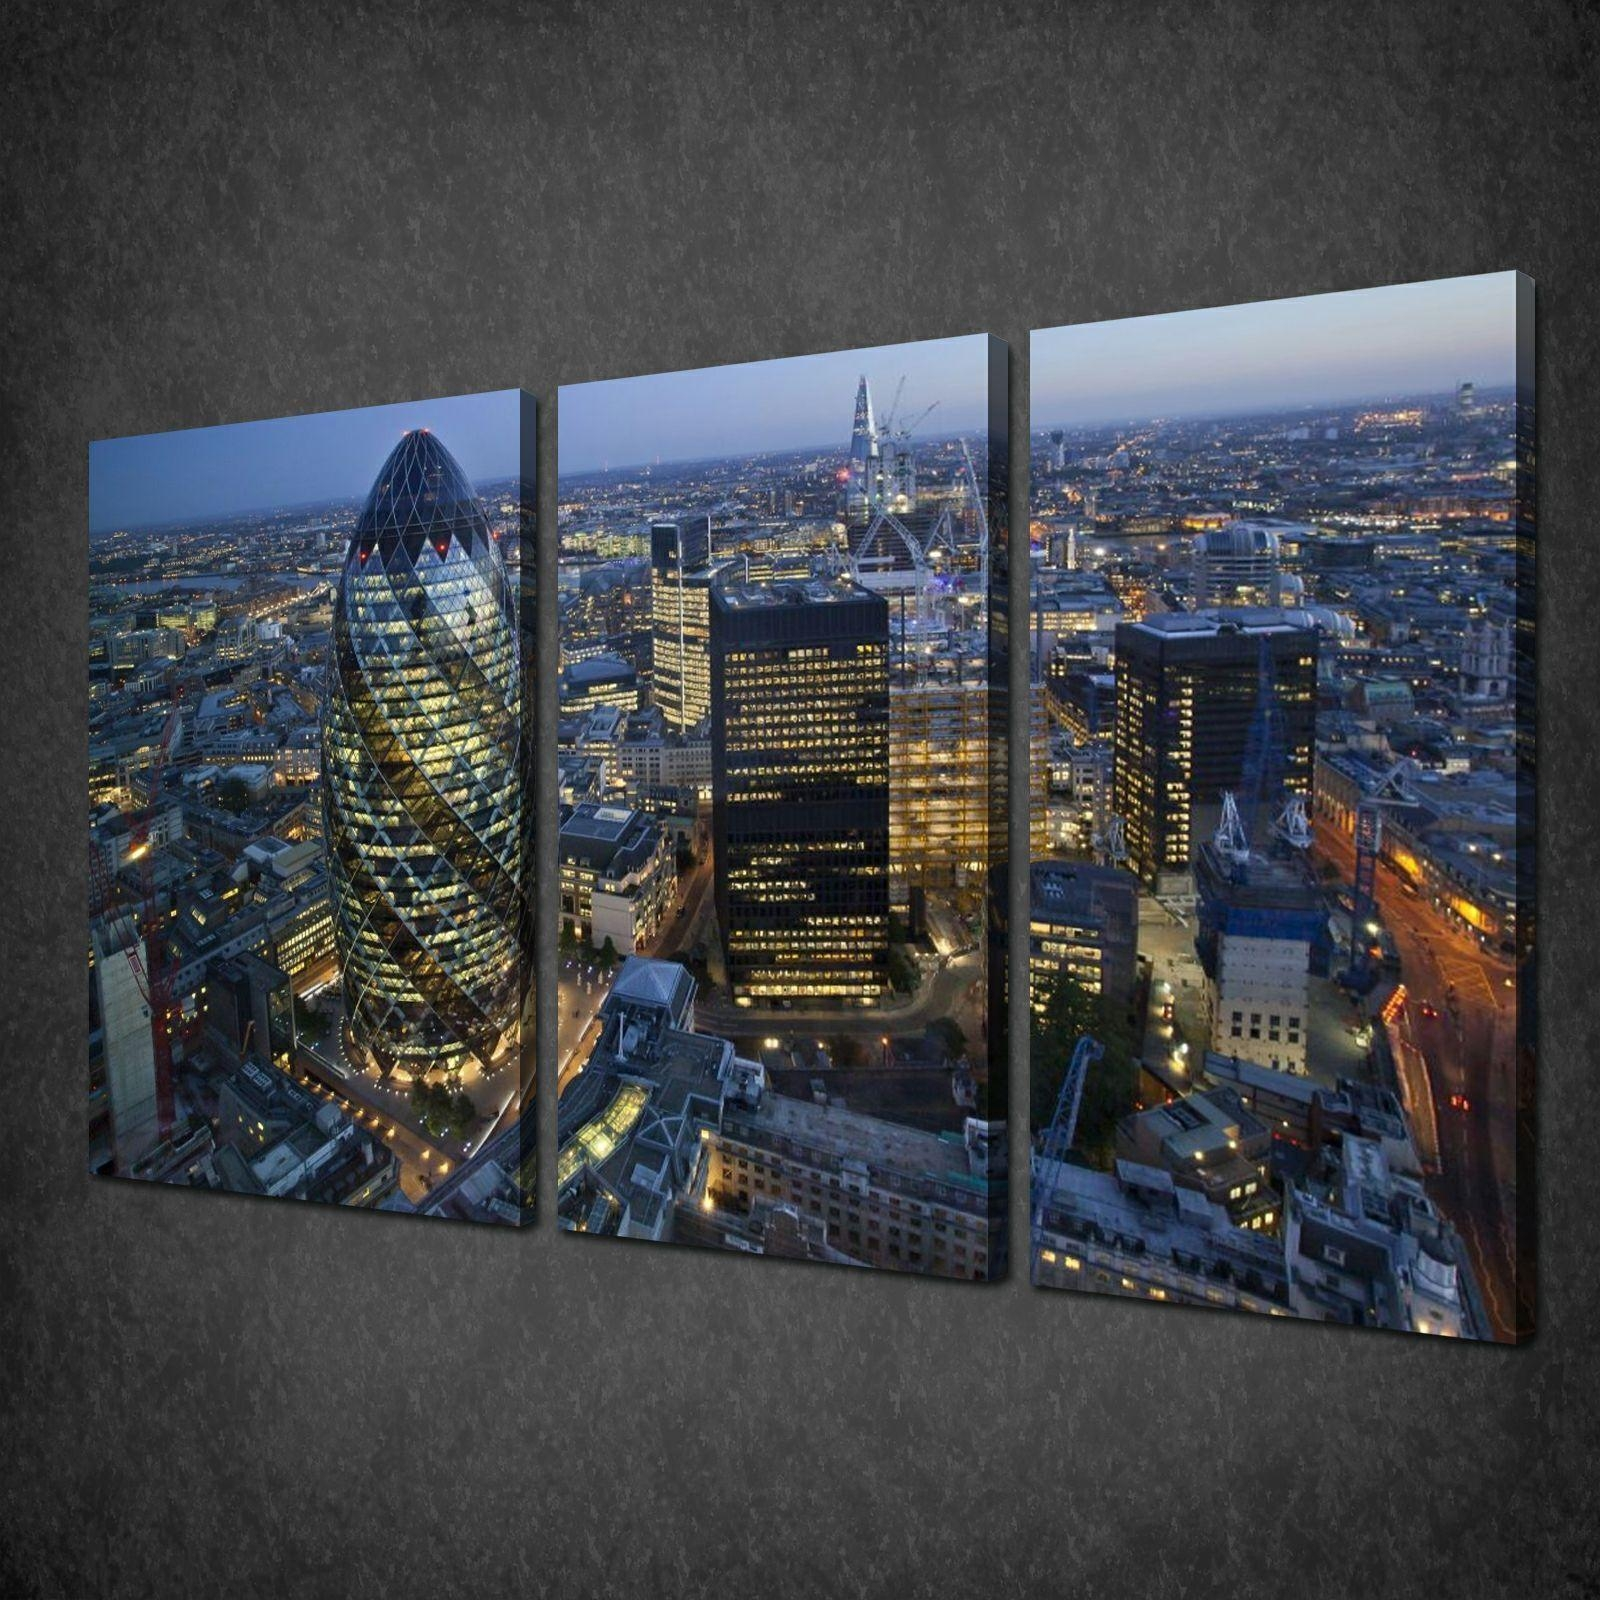 Night In London City Skyline 3 Panels Canvas Print Picture Wall Throughout Cityscape Canvas Wall Art (View 15 of 20)